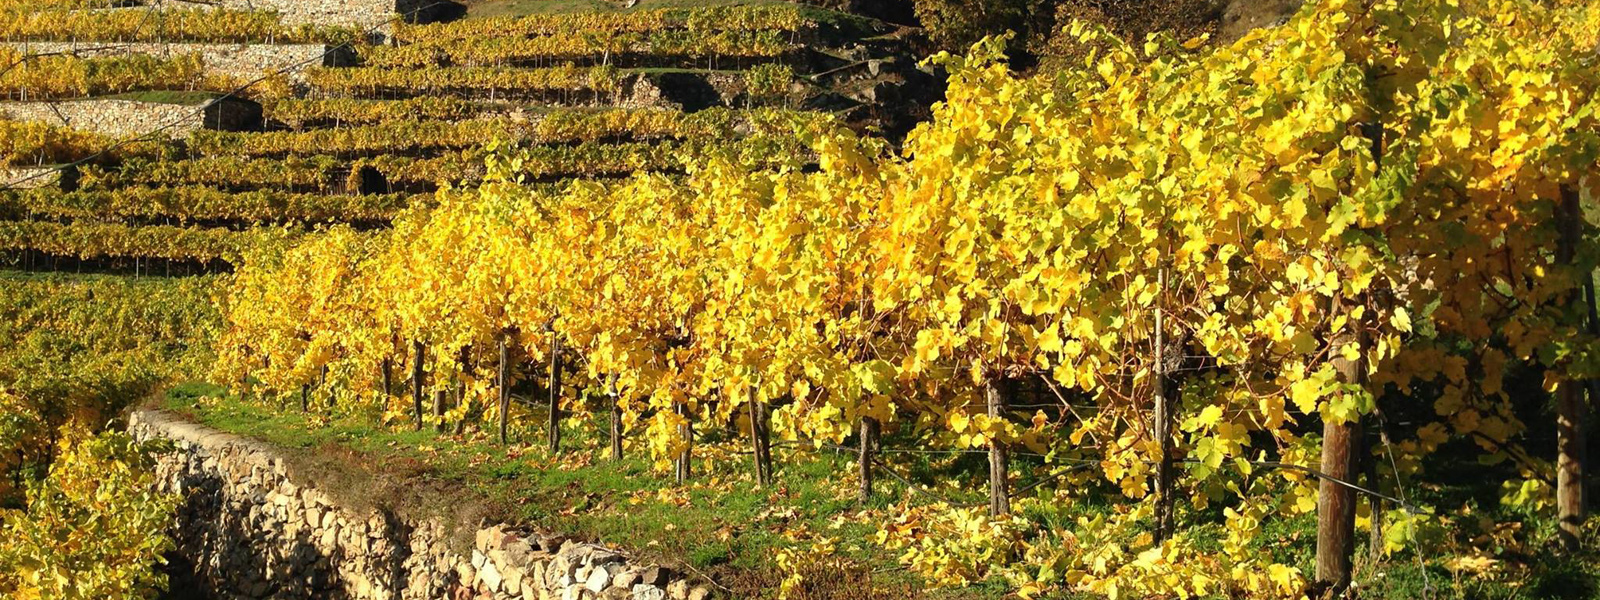 Weingarten im Herbst / vineyard in autumn @ Peter Schneider